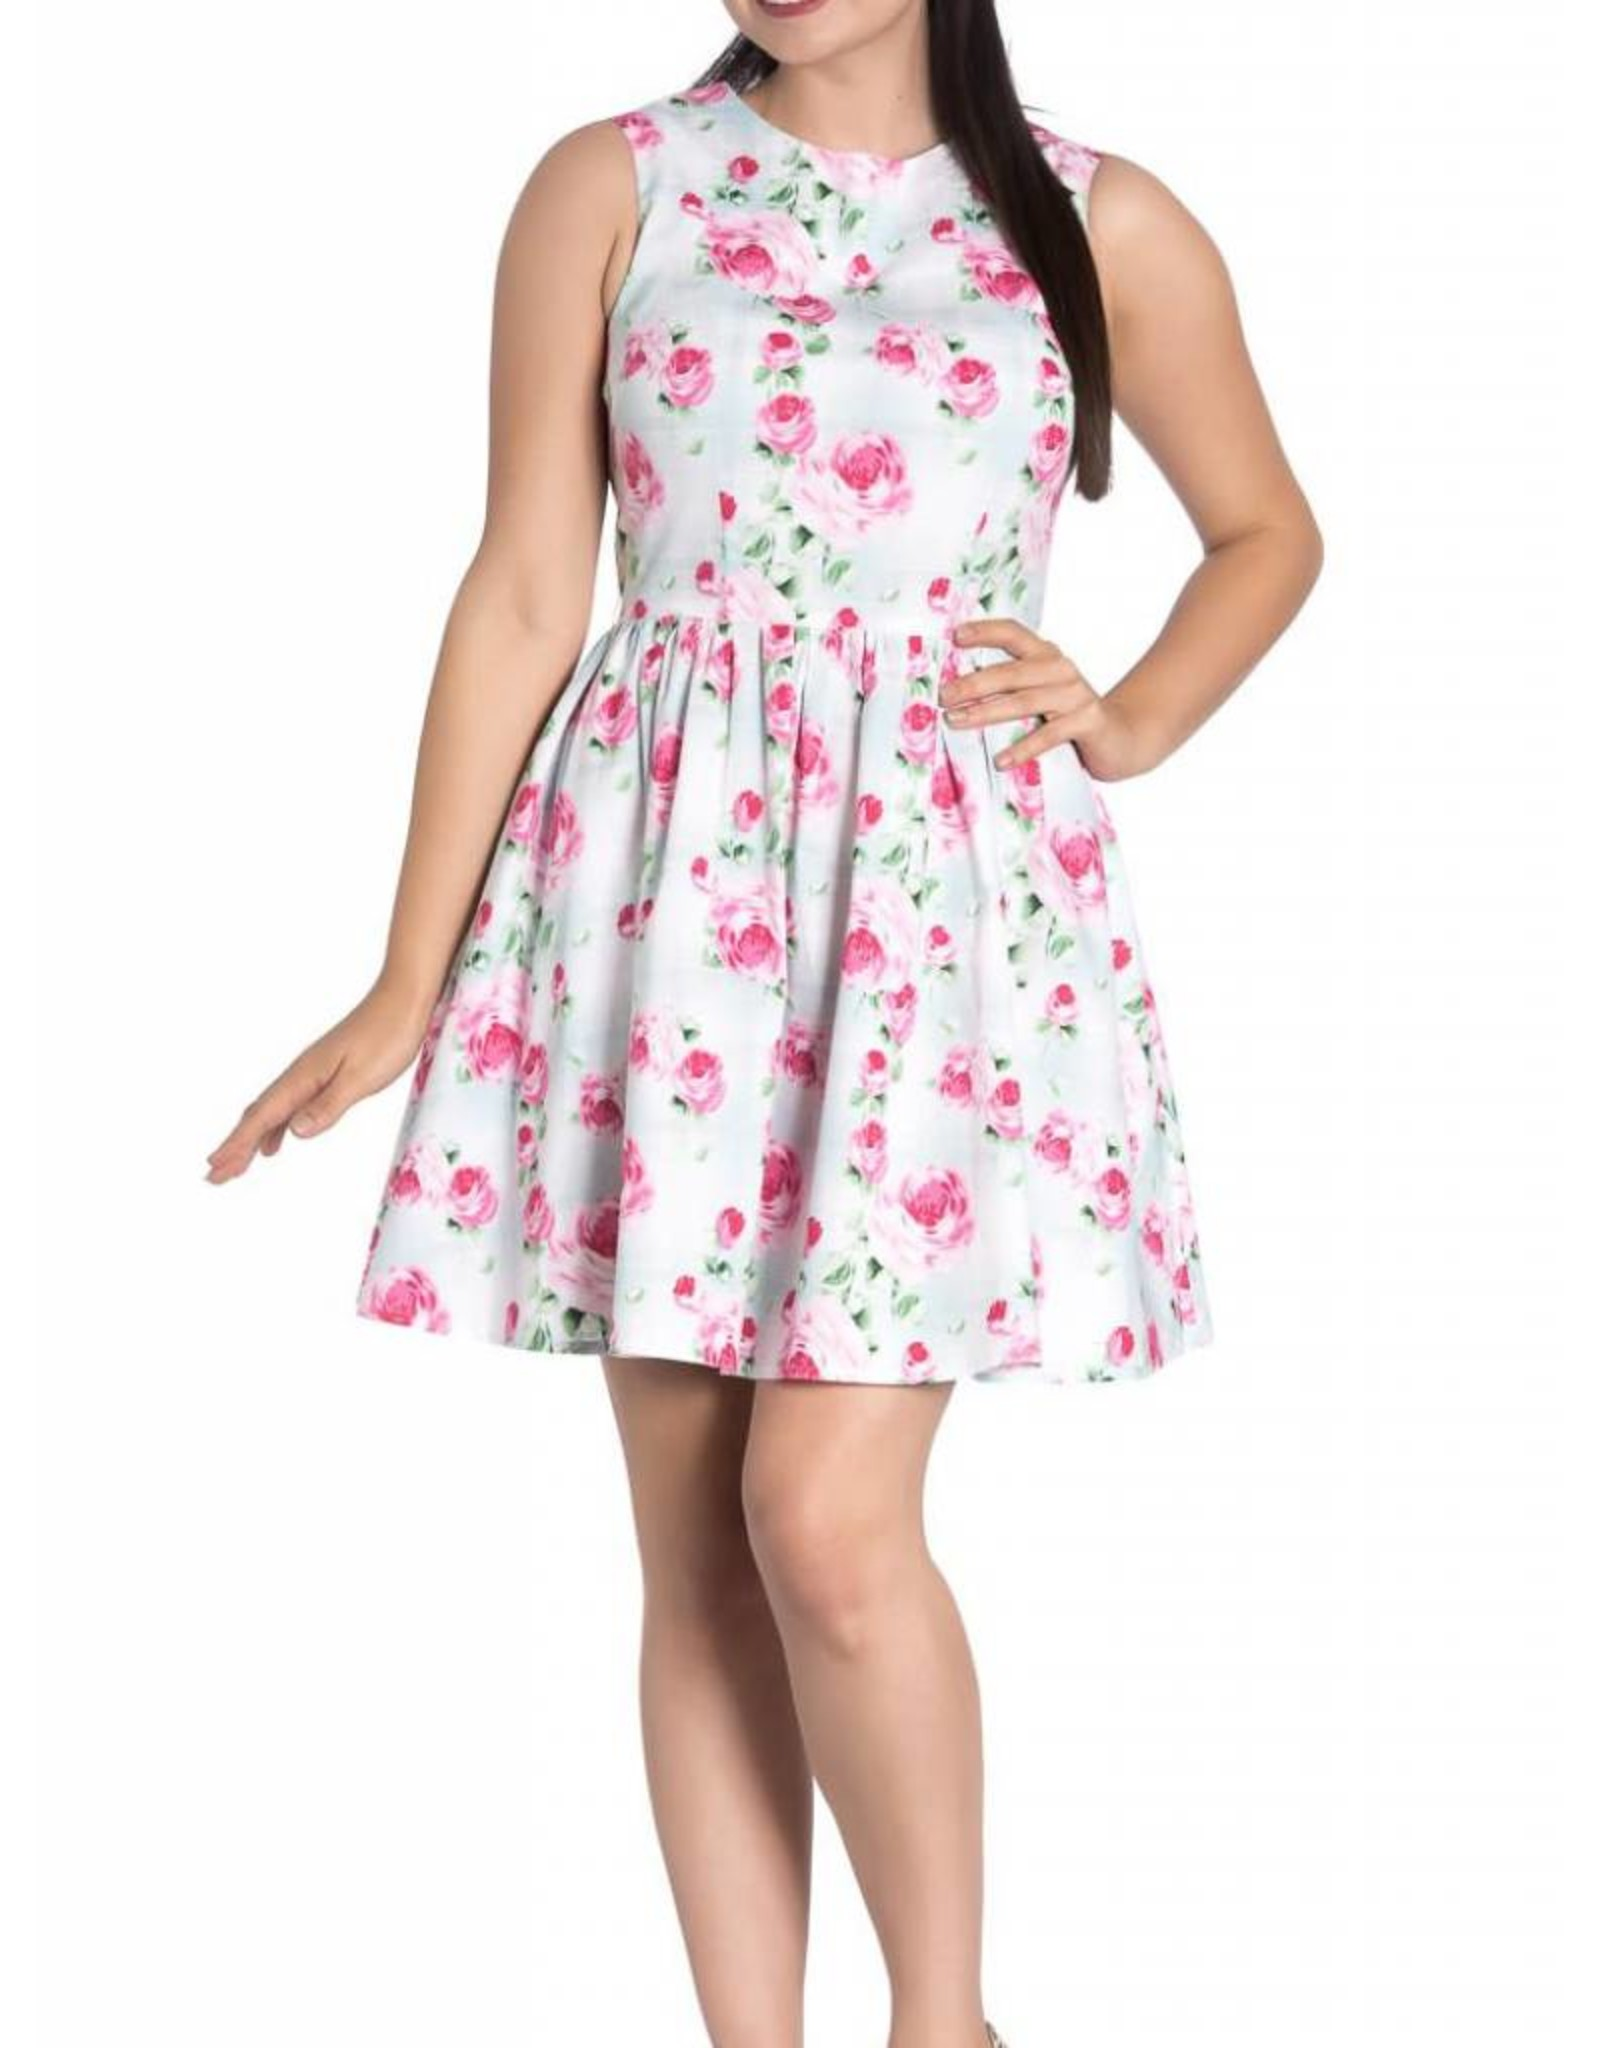 HELL BUNNY - Nathalie Mini Dress